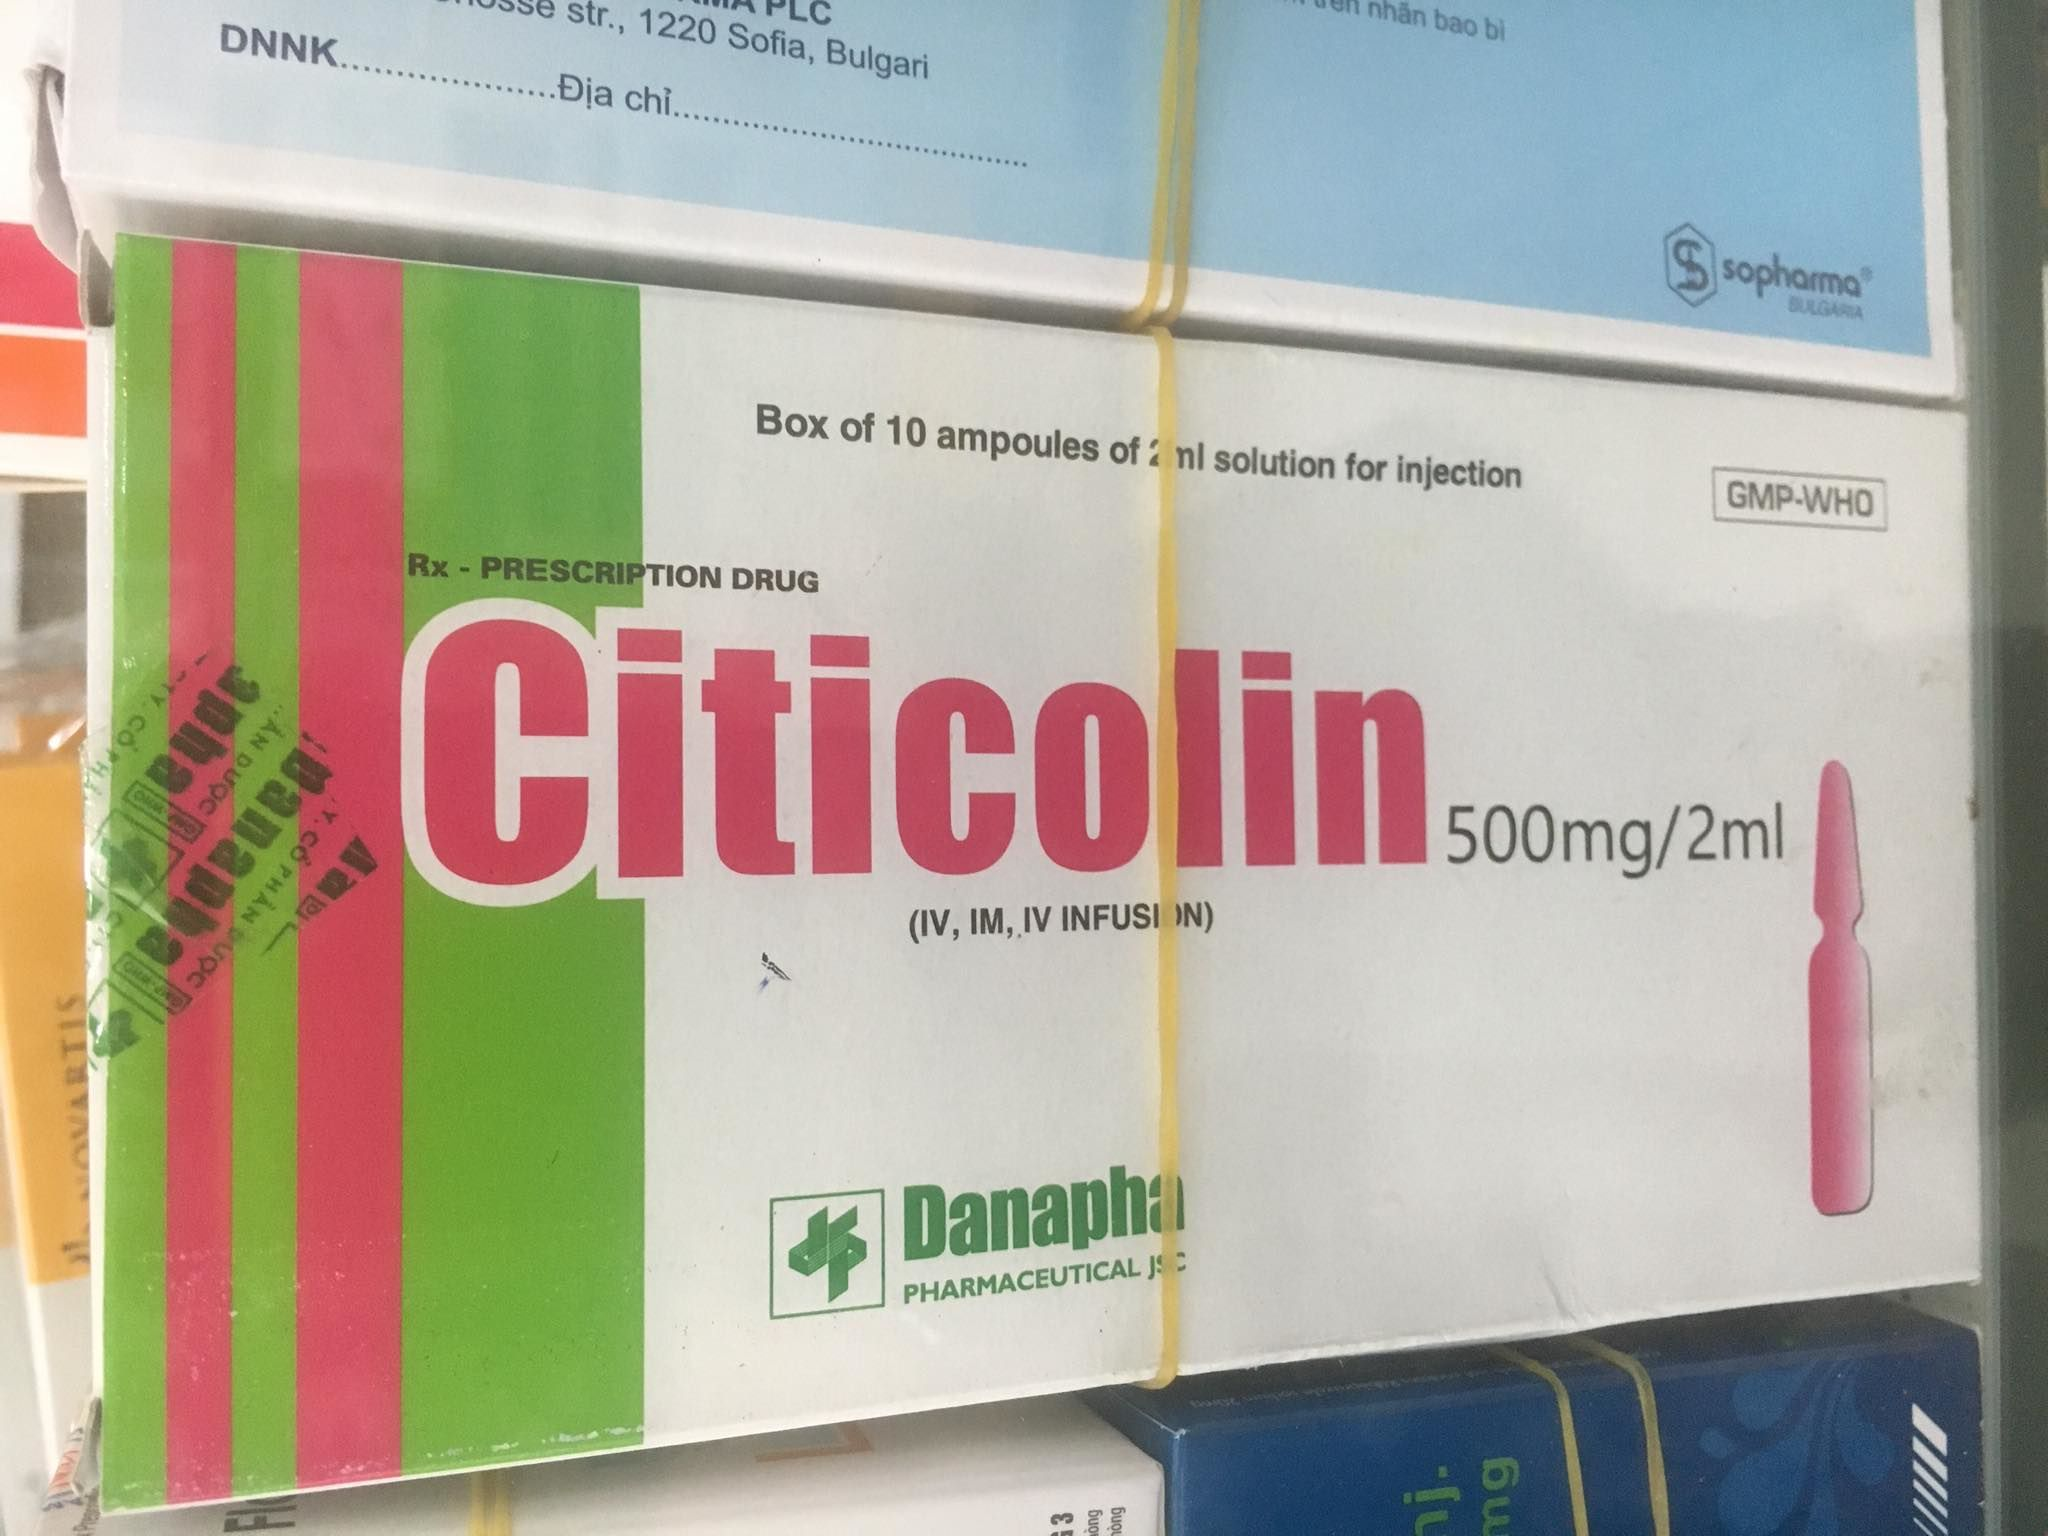 Citicolin 500mg/2ml Danapha